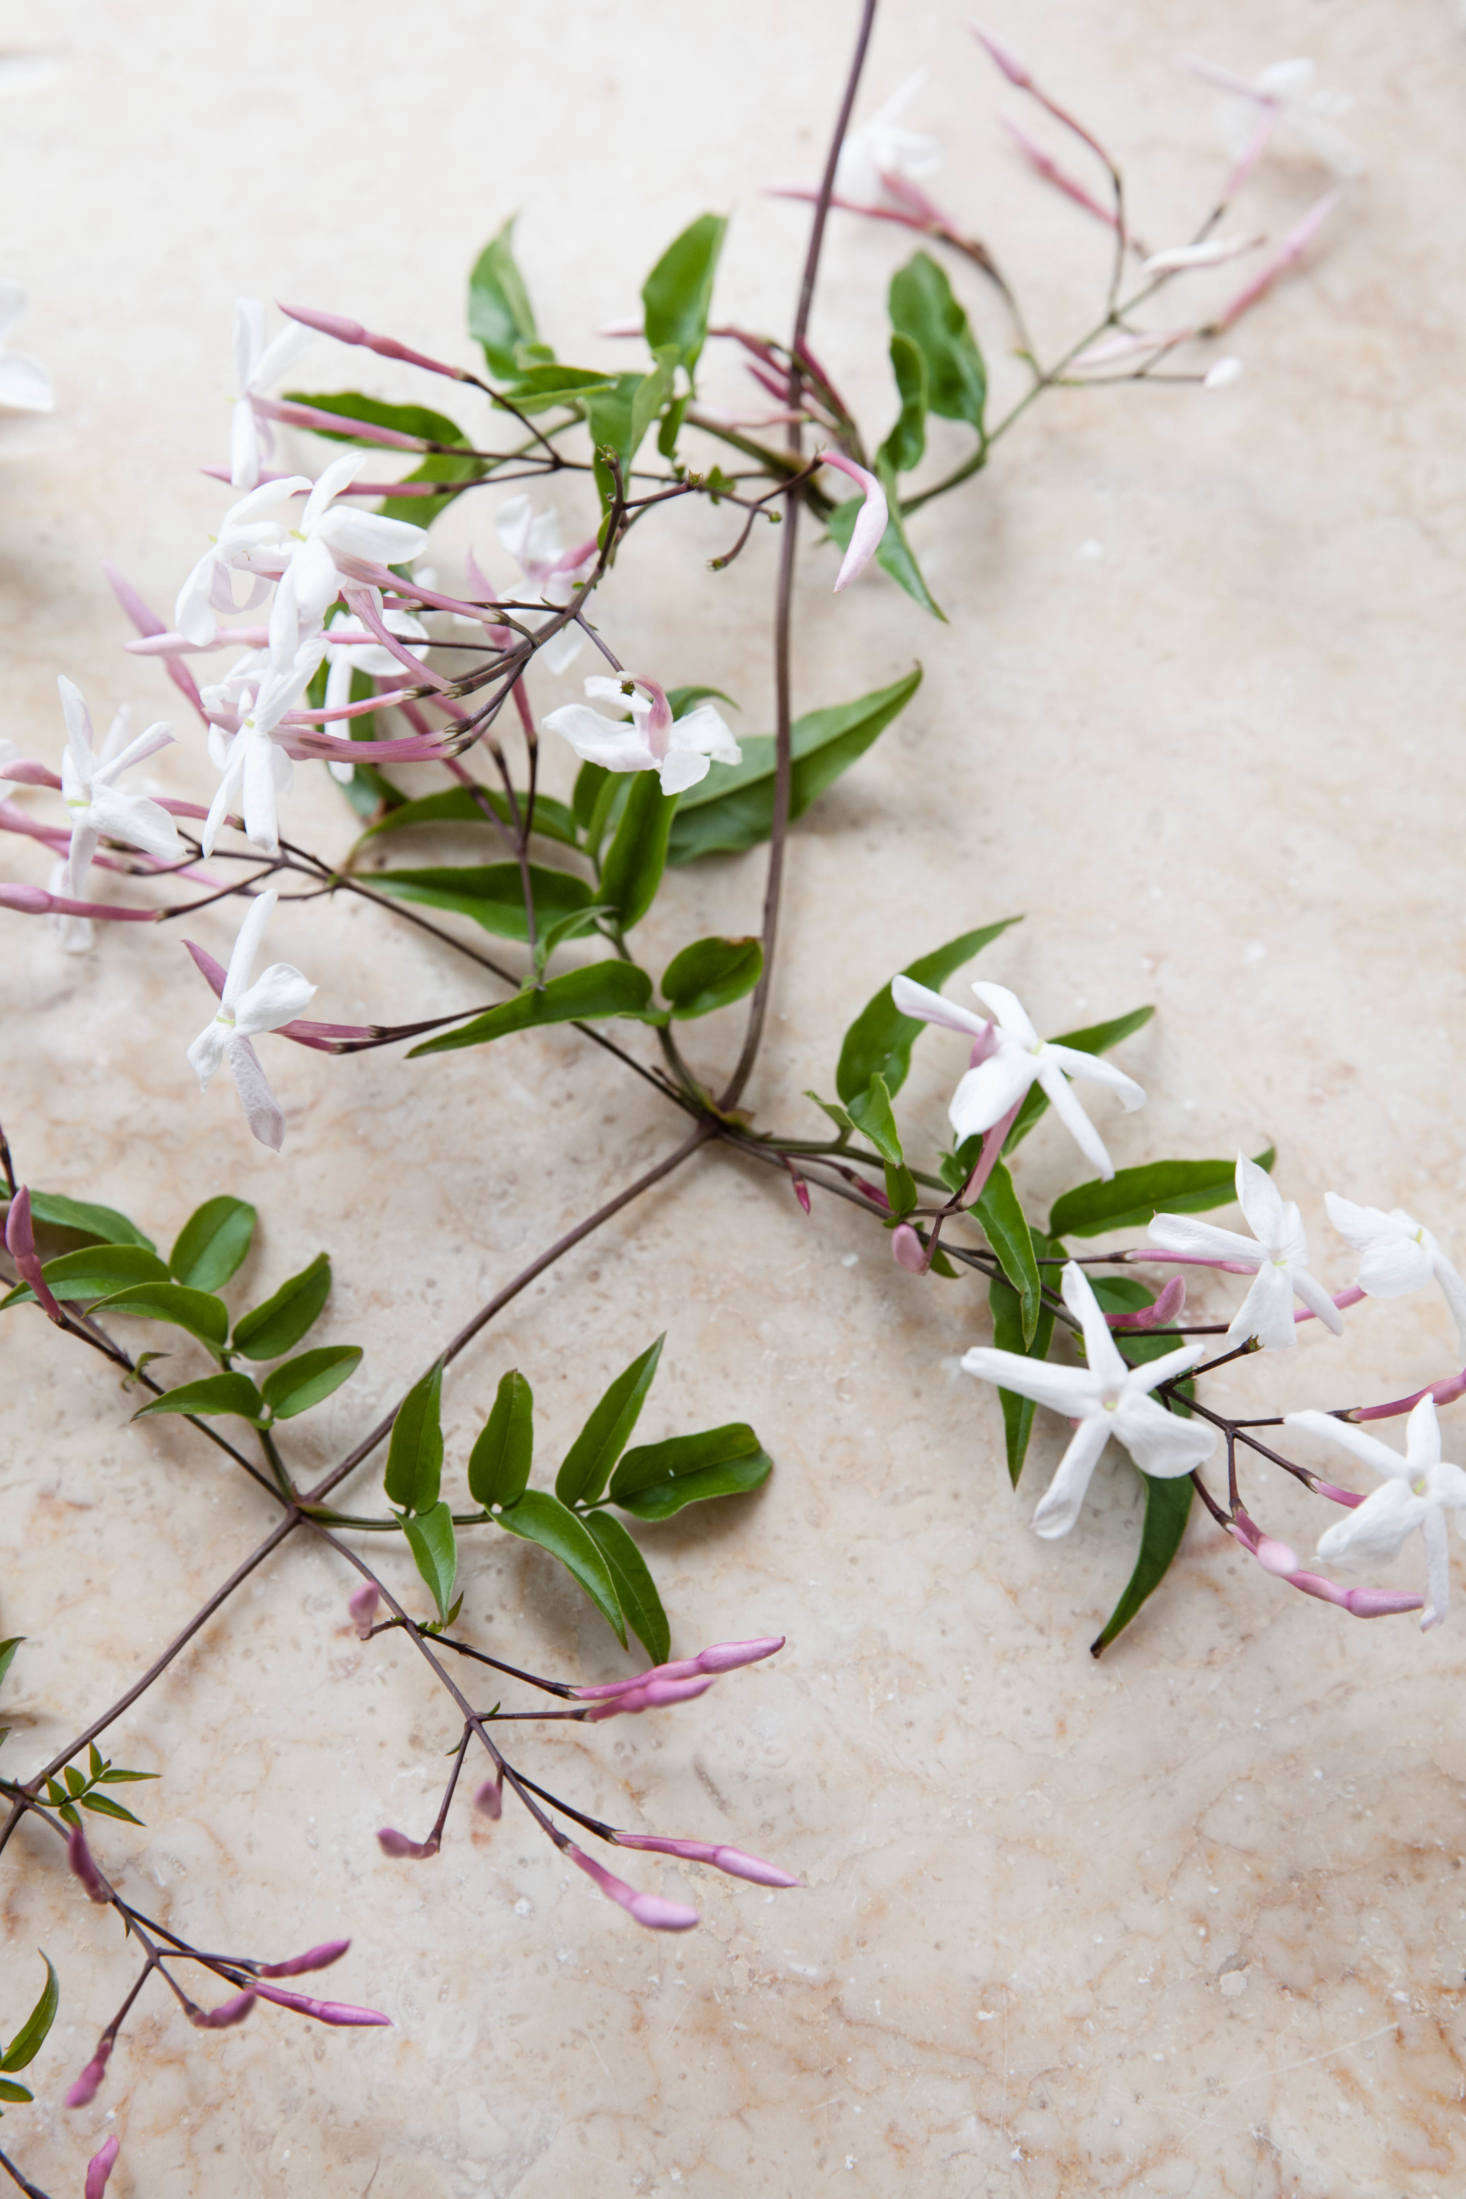 Rethinking jasmine the perfect vase for a fragrant flowering vine the star shaped flowers emit a heady fragrance that can induce headaches to even the izmirmasajfo